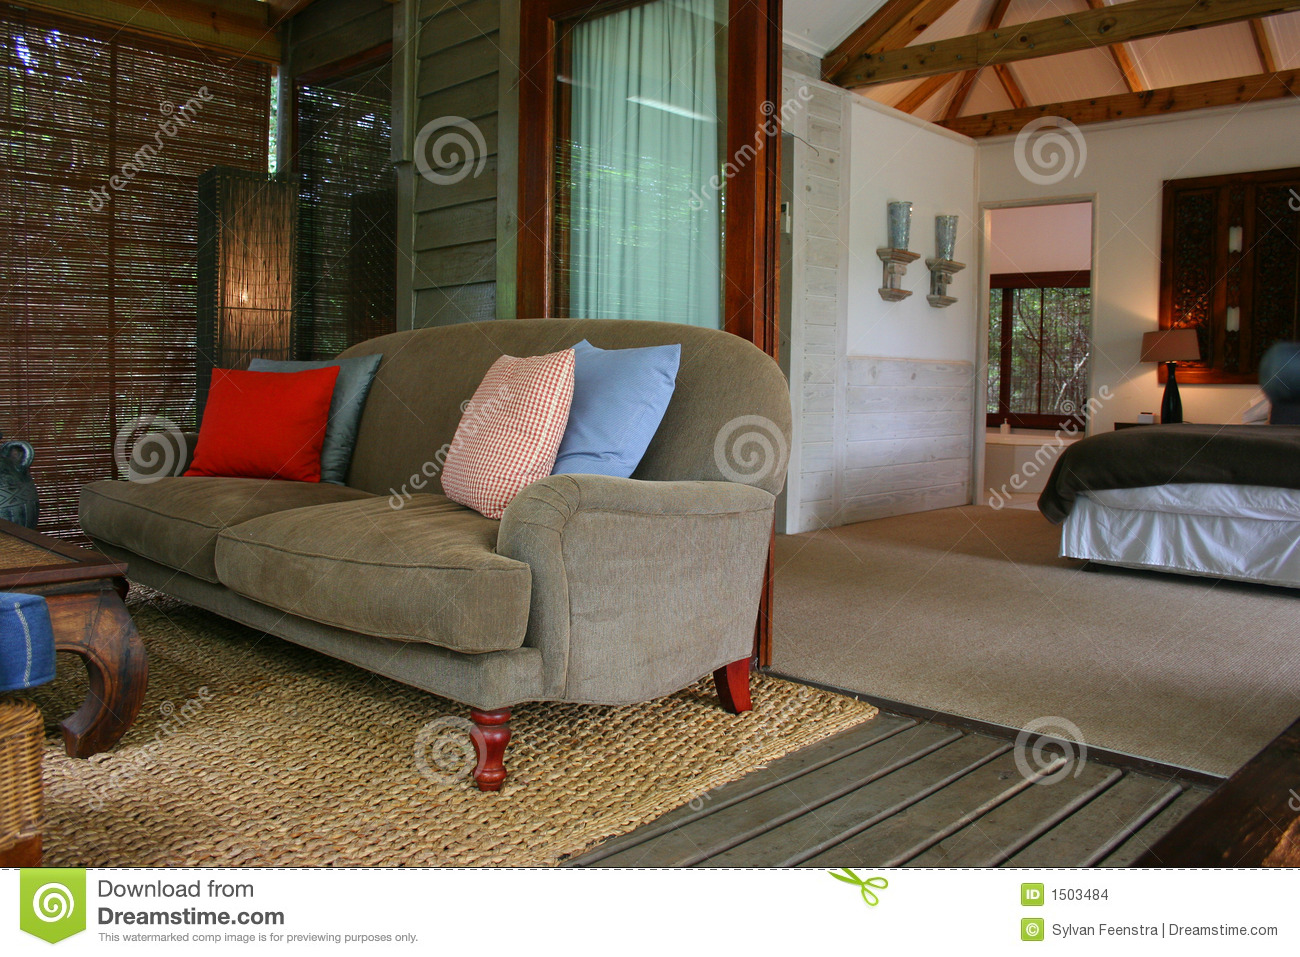 Modern African Interior Bedroom With Verandah Stock Photo